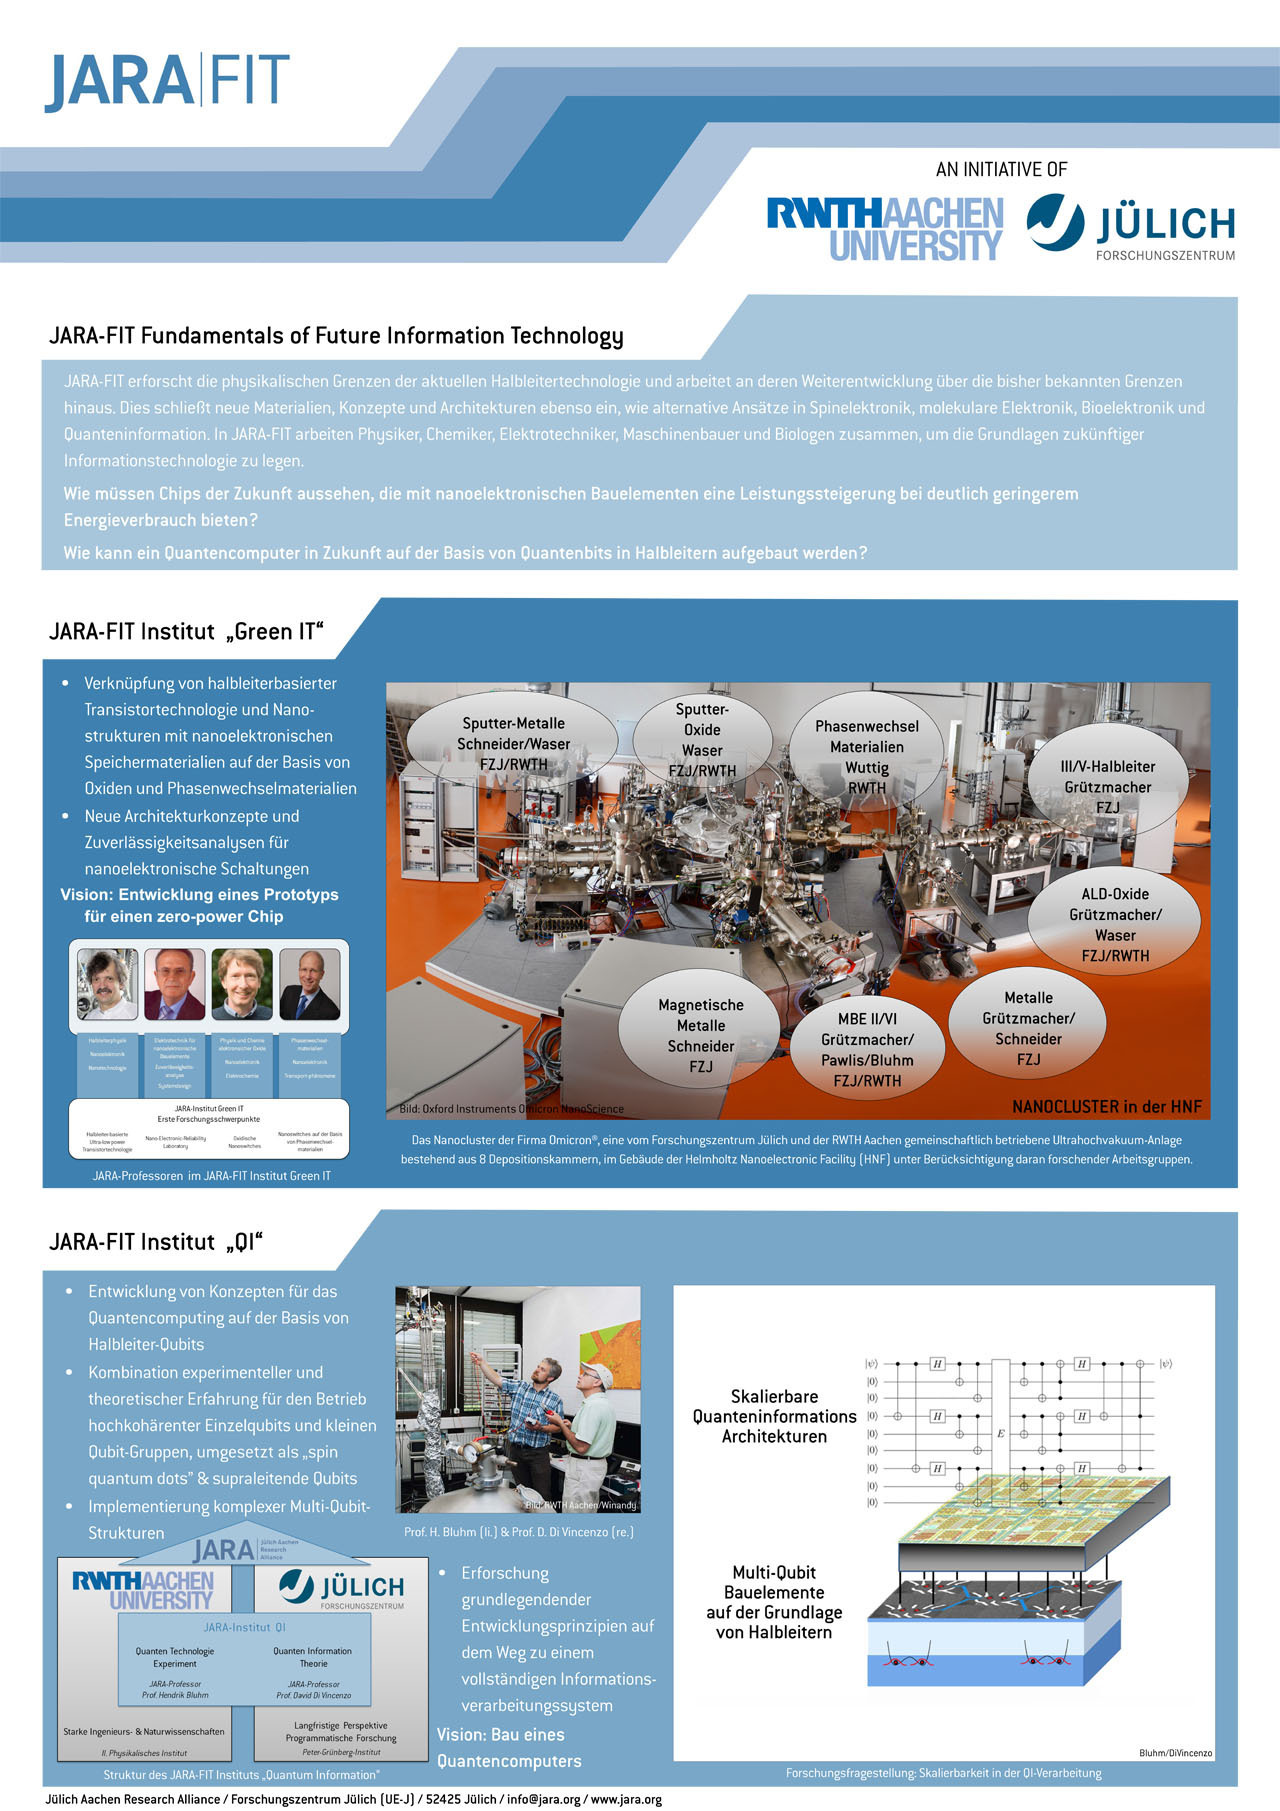 JARA-FIT: Fundaments of Future Information Technology